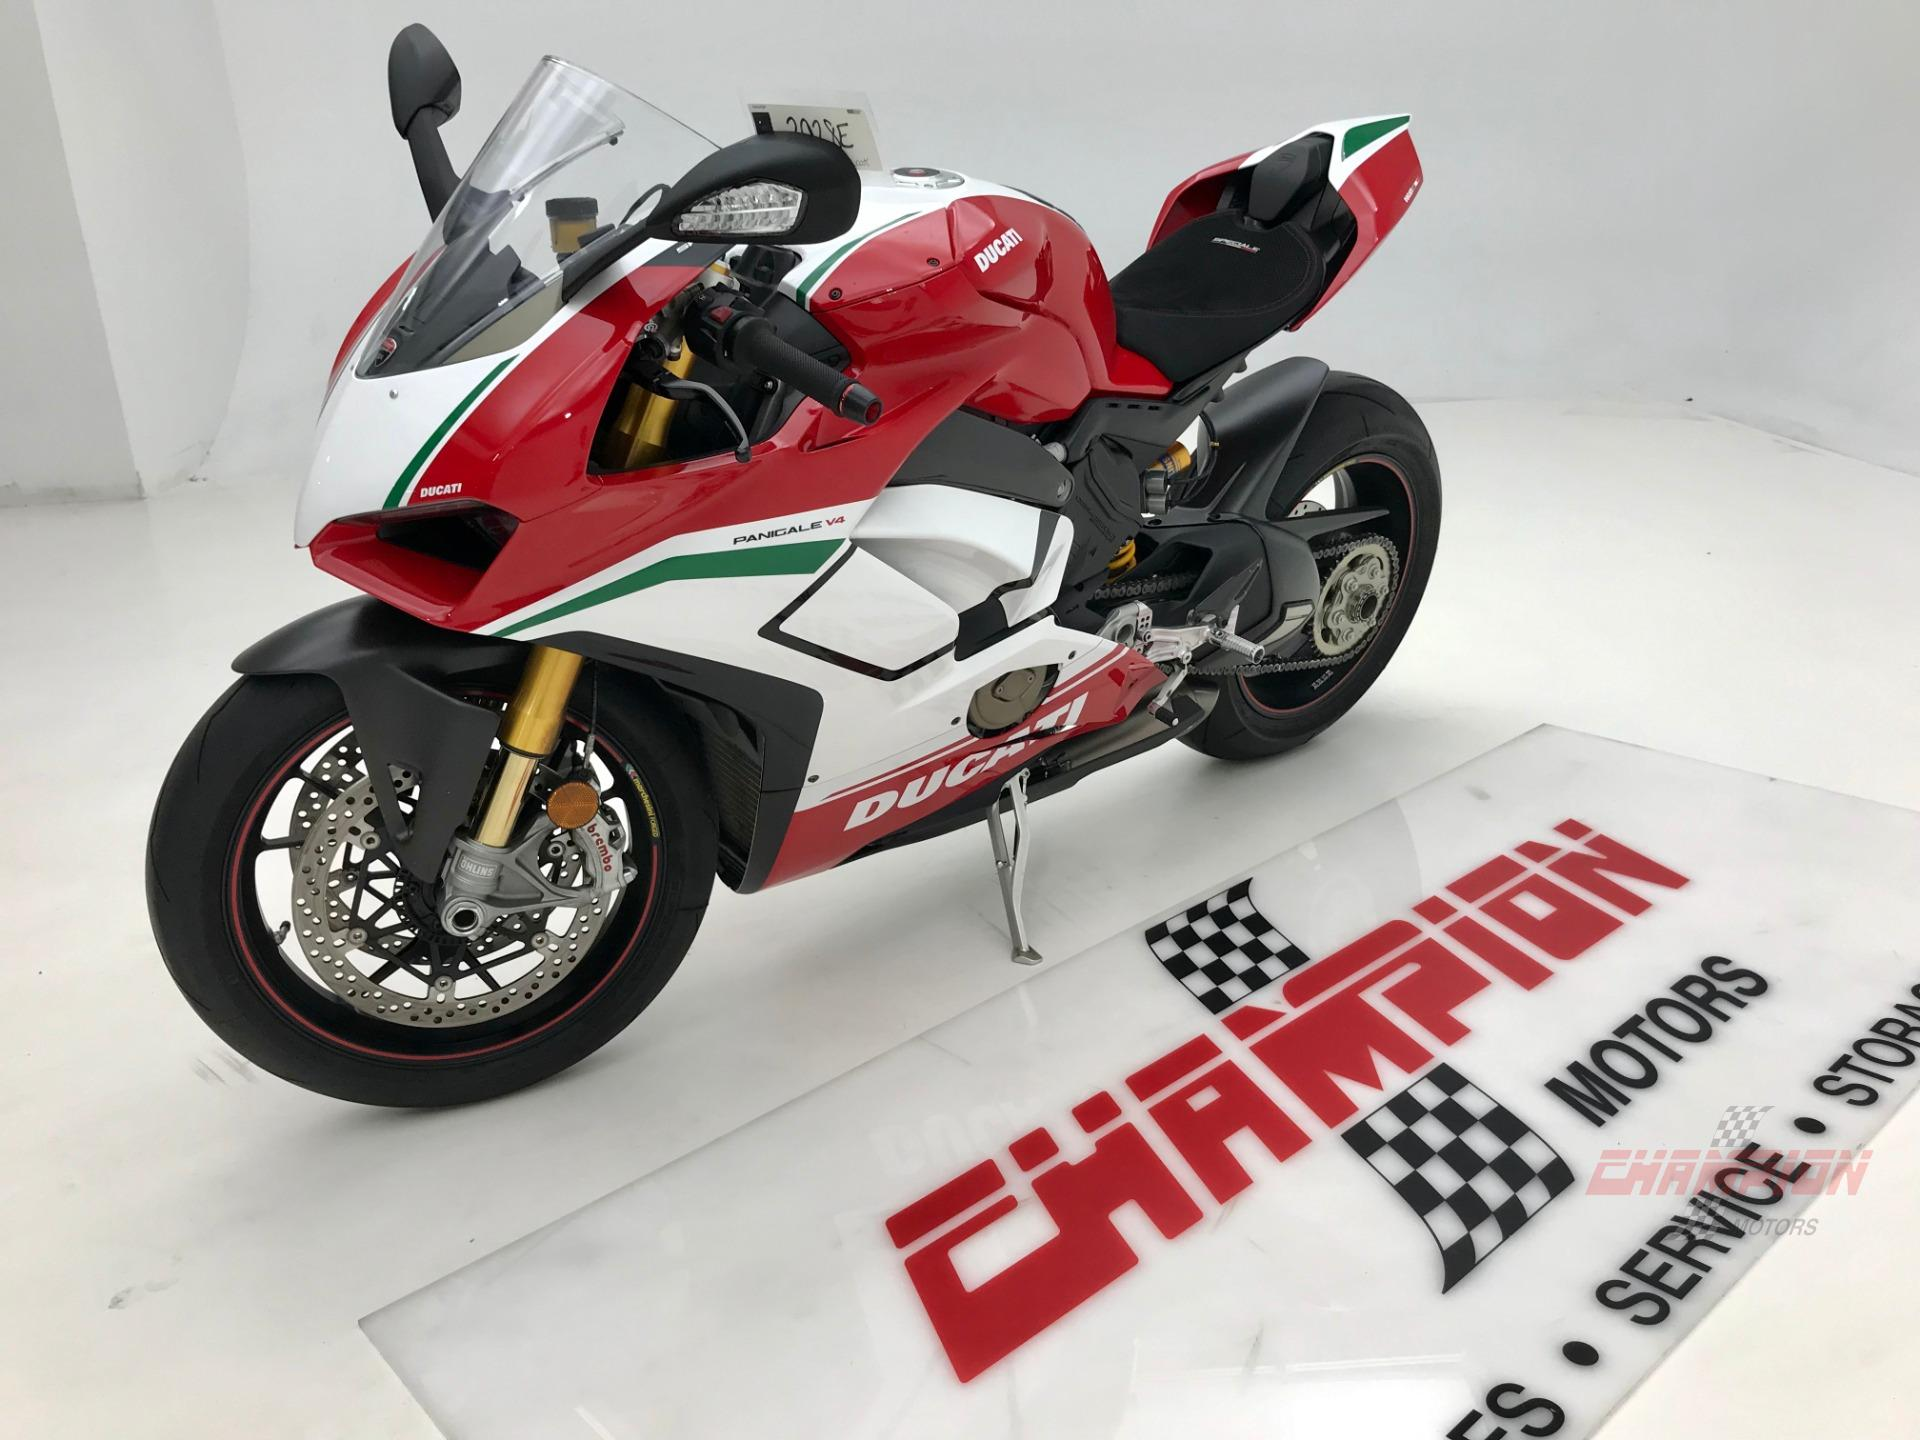 2018 Ducati Panigale V4 Speciale Champion Motors International L